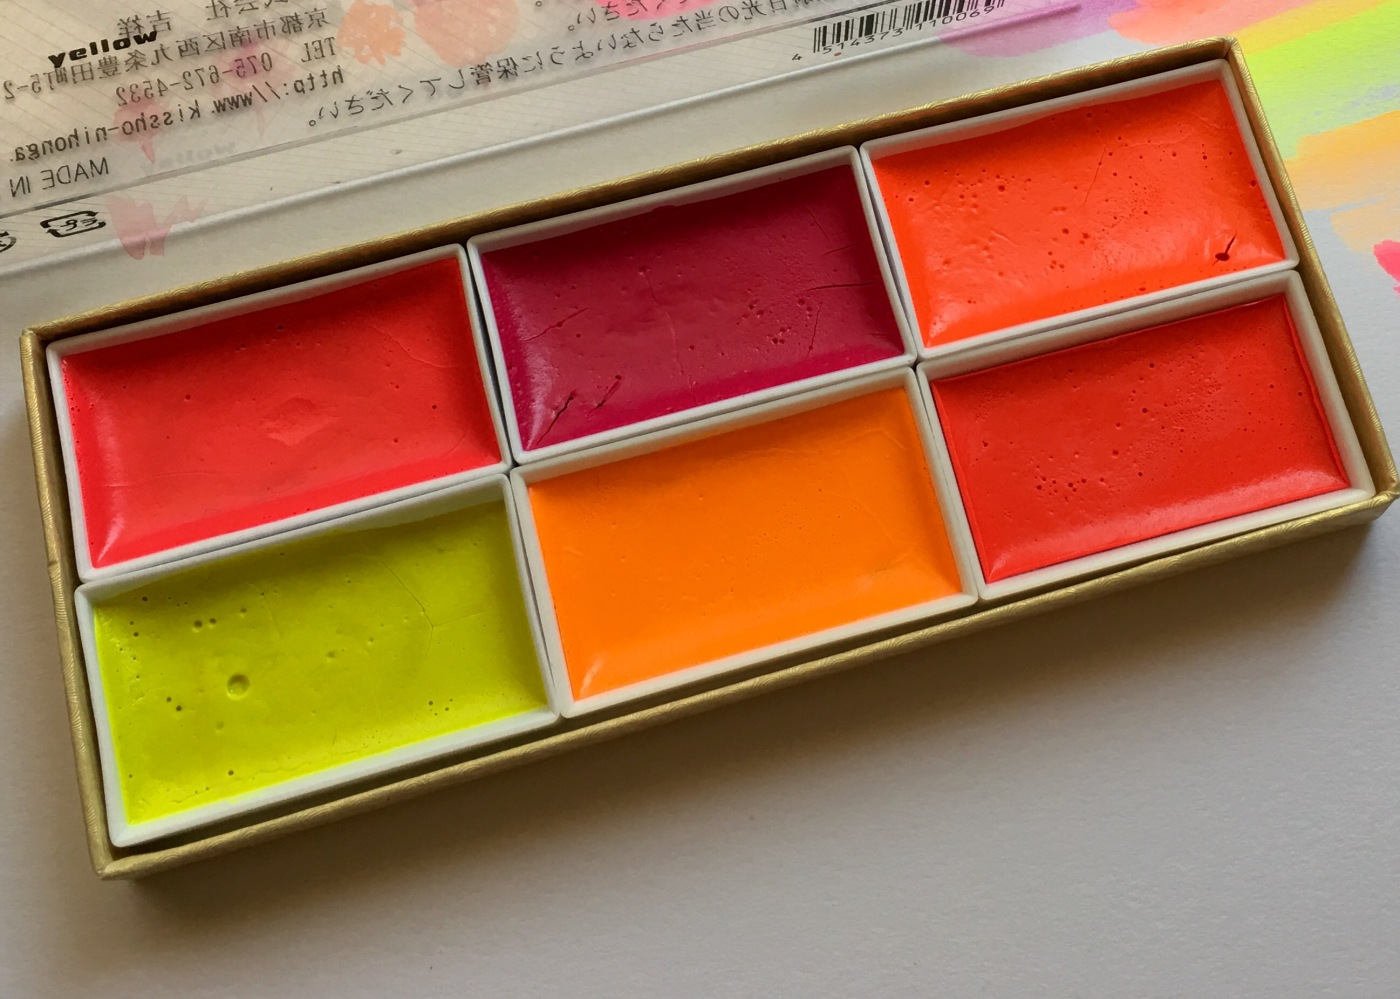 Kissho Gansai Lumi Accent Colors florescent watercolors